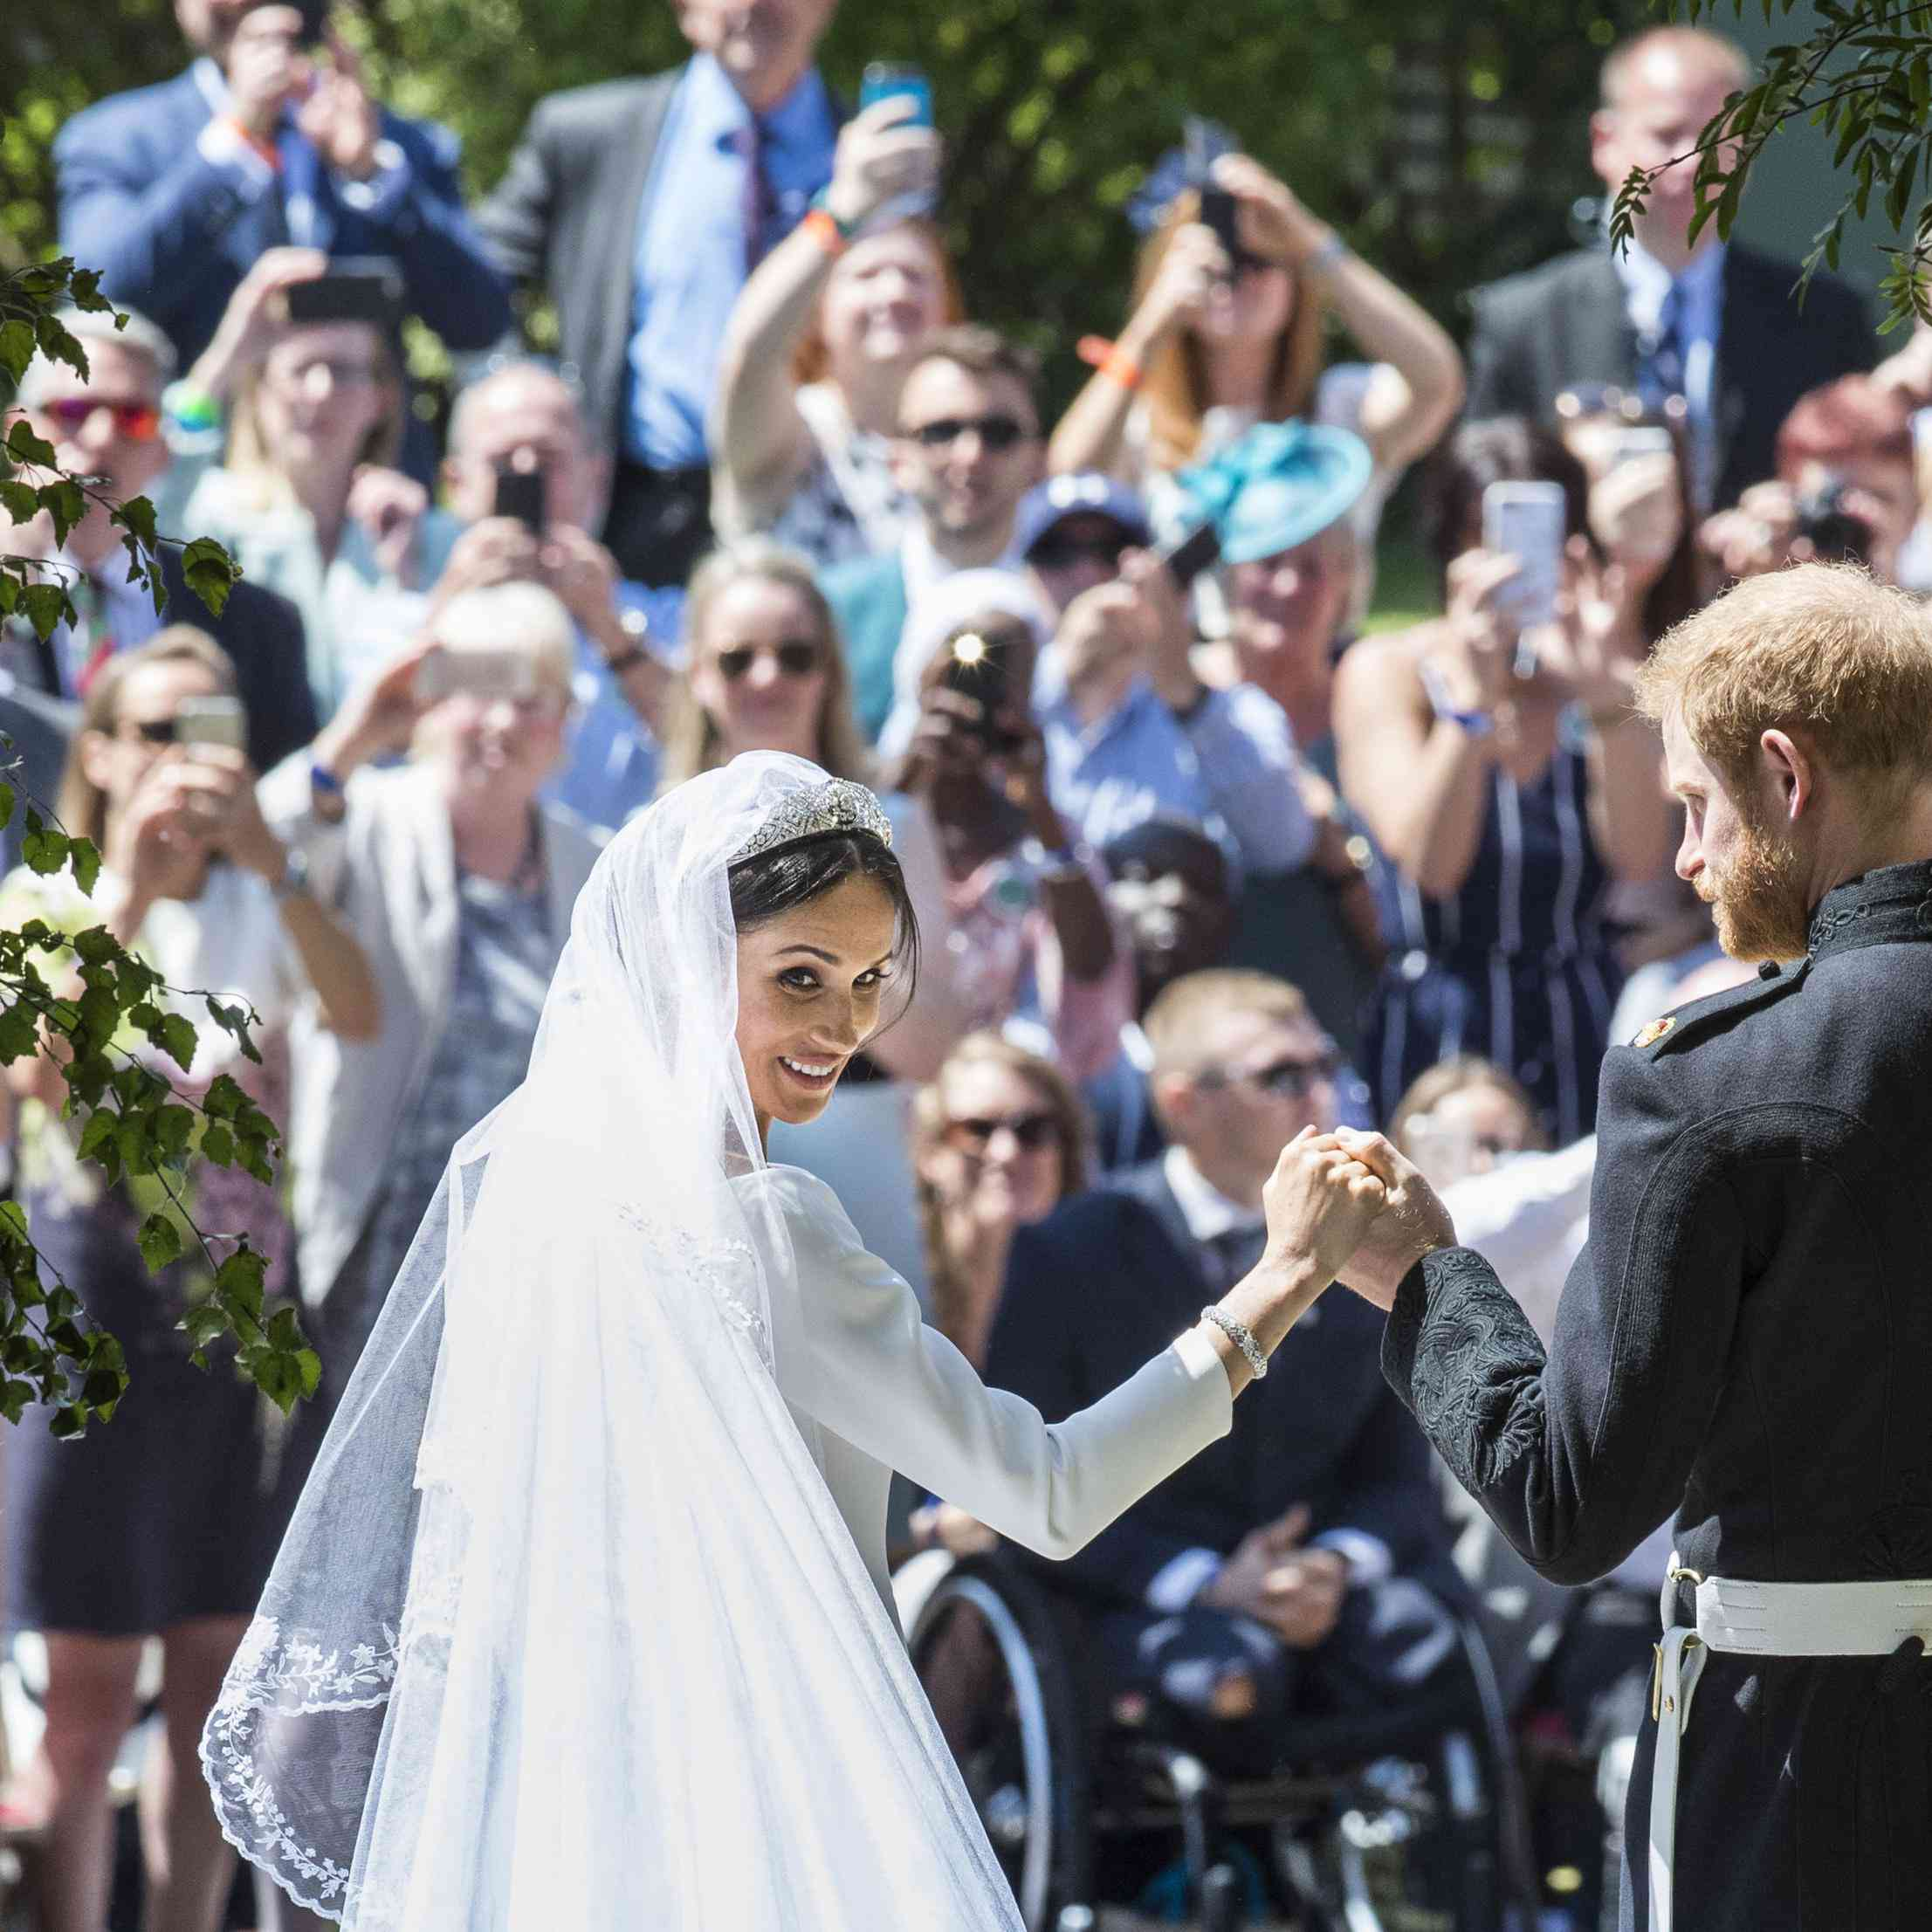 Prince William Wedding.Here S How Prince Harry And Meghan Markle S Wedding Compared